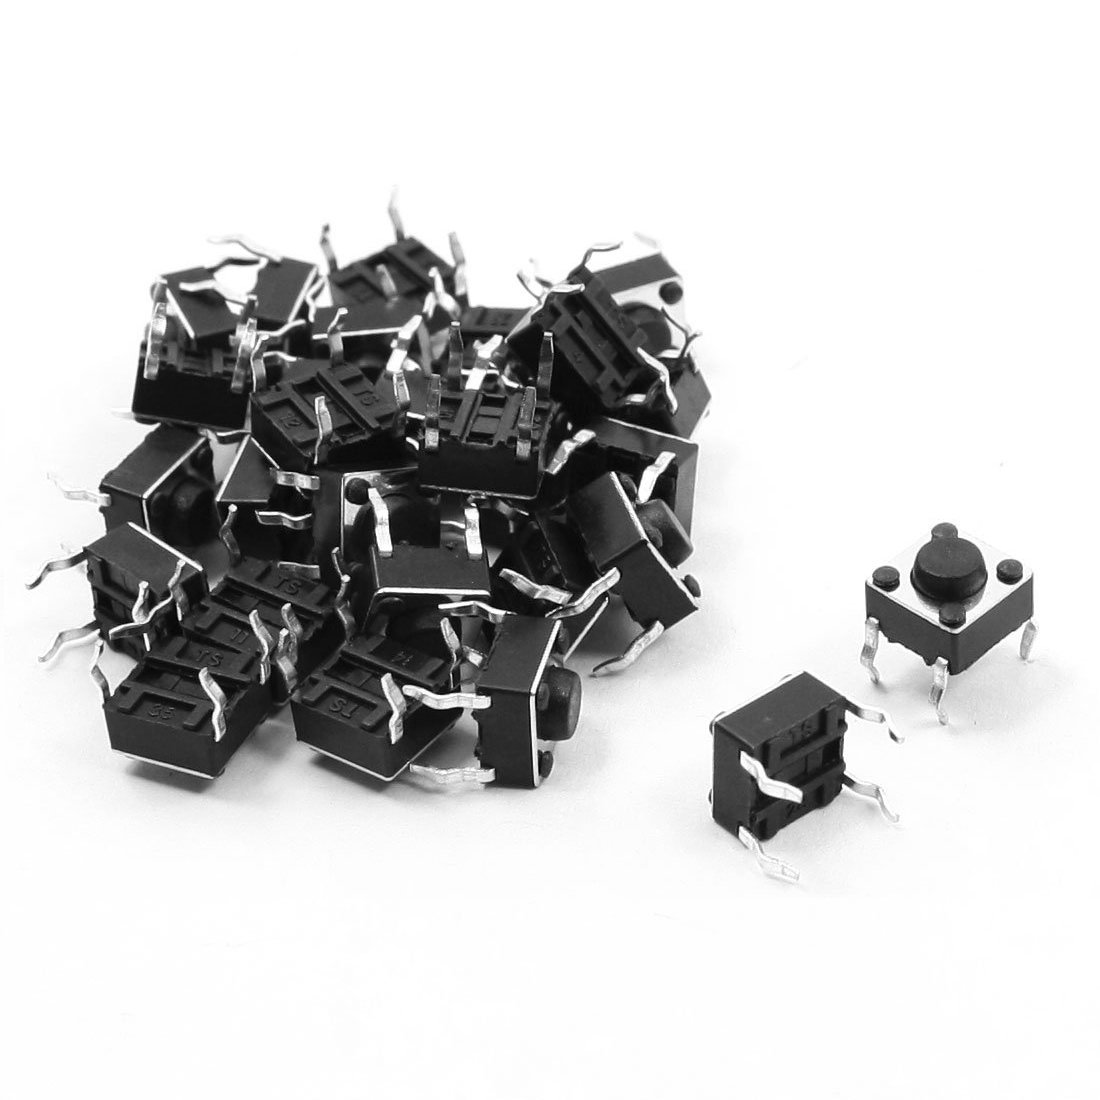 THGS 25pcs Round Pushbutton 4 Pins SMD SMT Momentary Tactile Switch стоимость